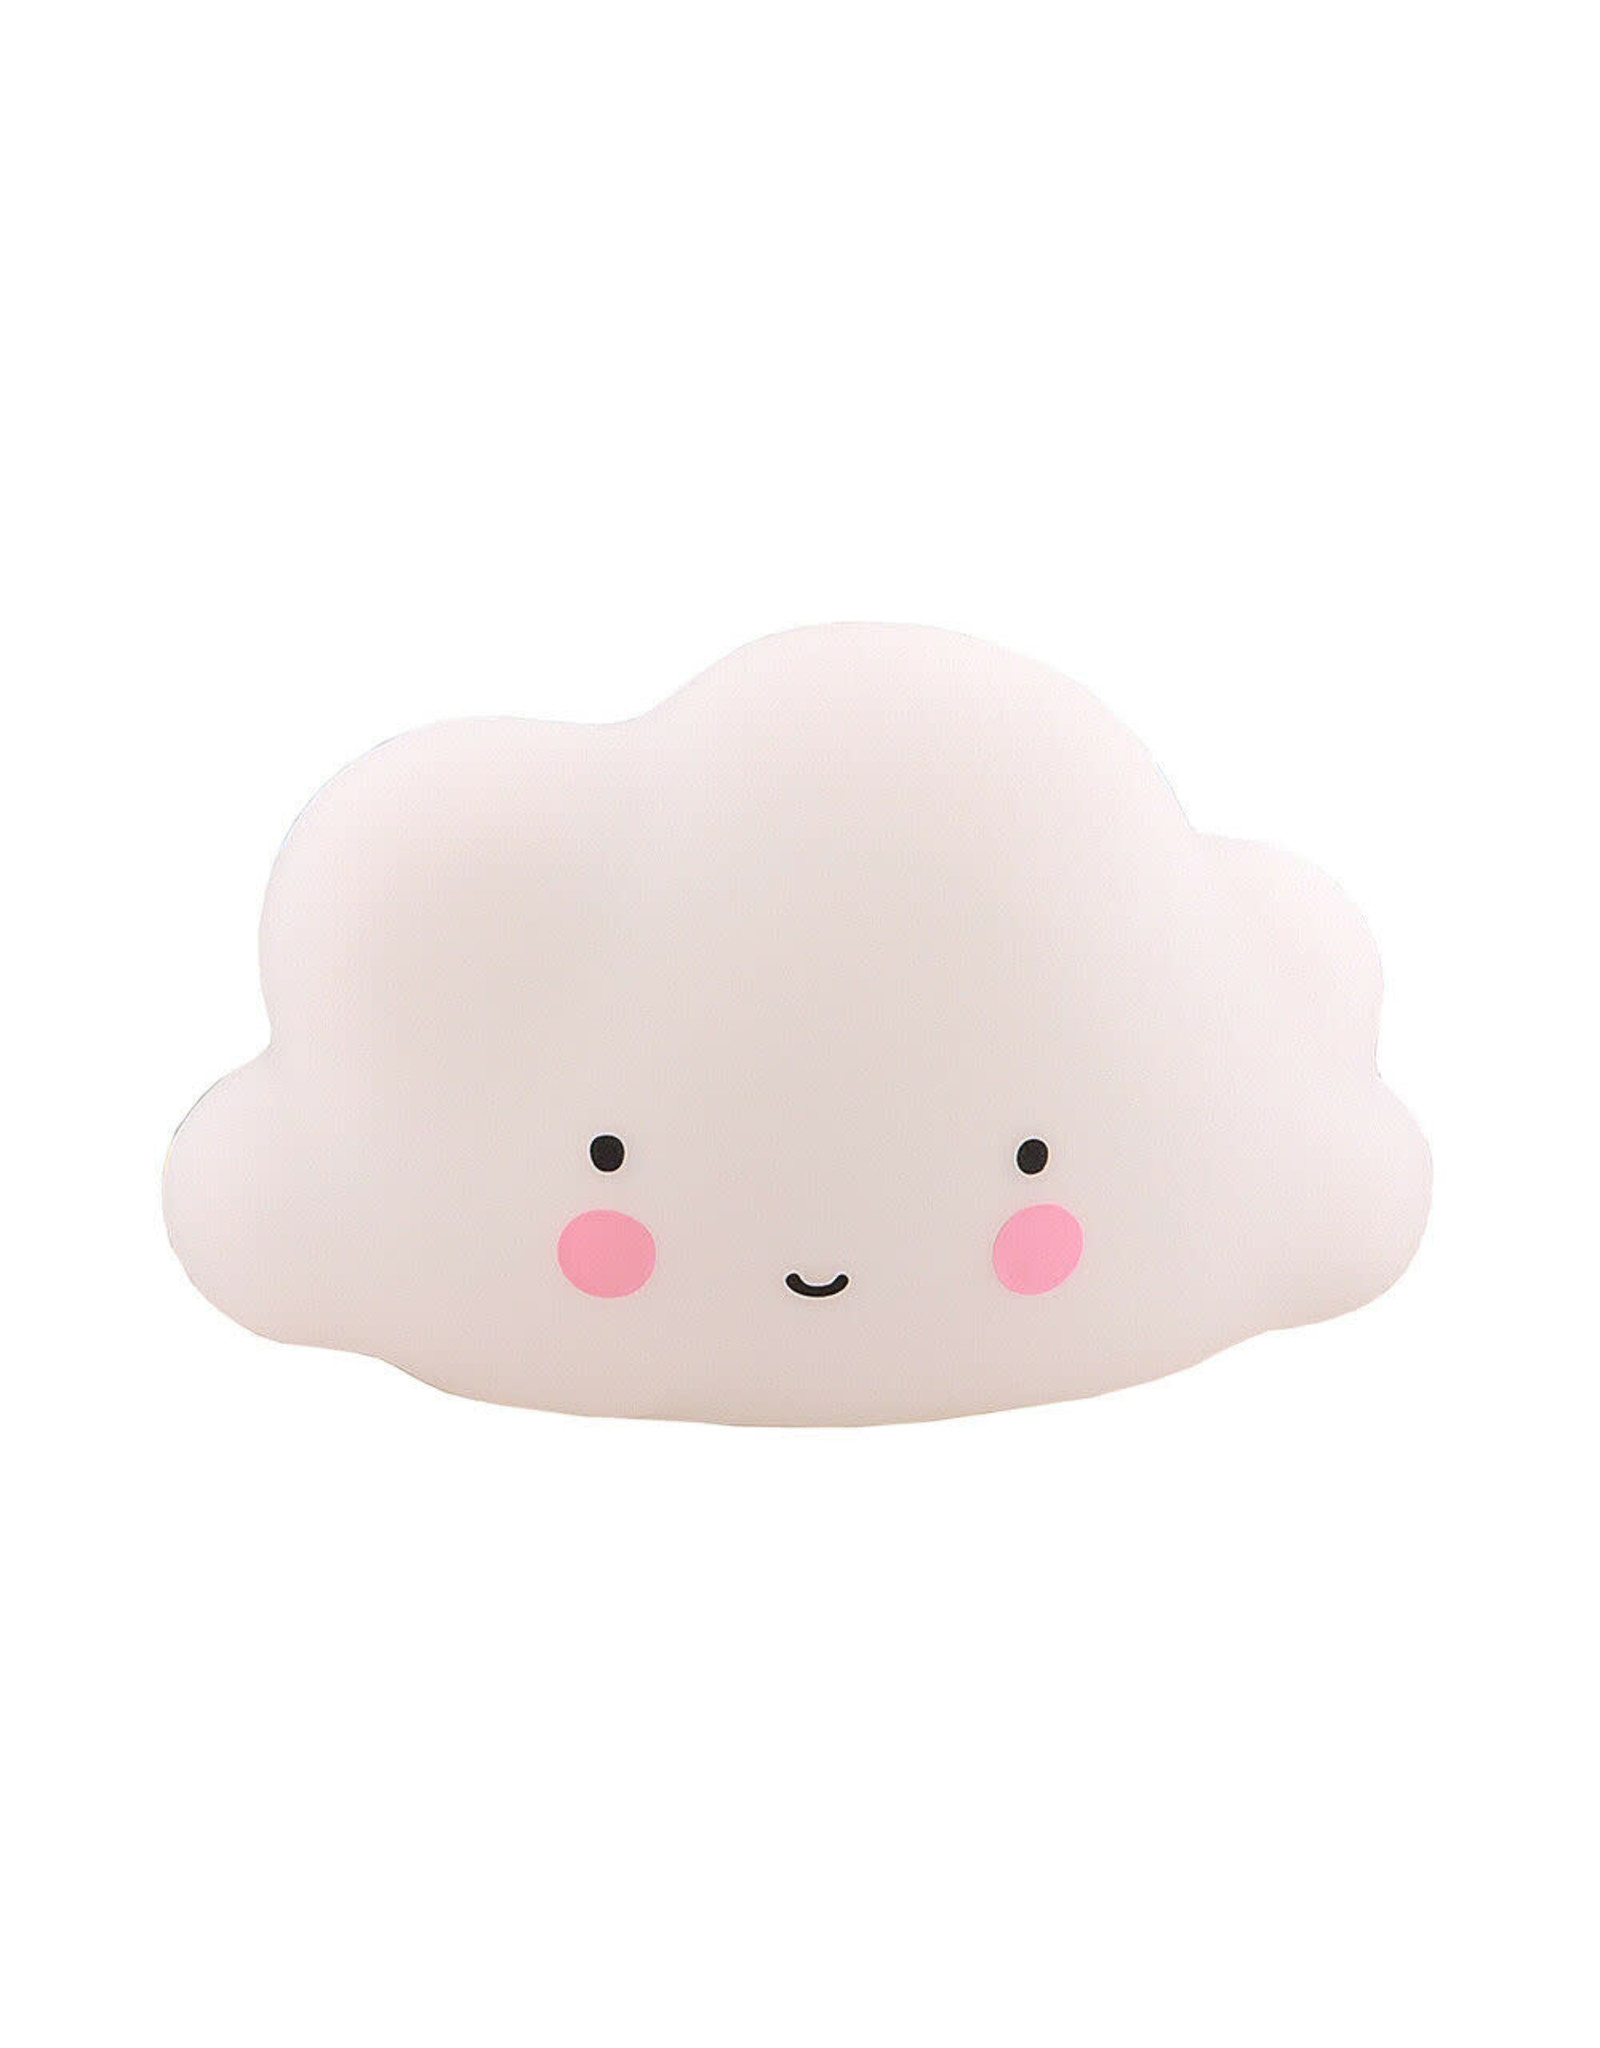 A Little Lovely Company Big Cloud White Night Light